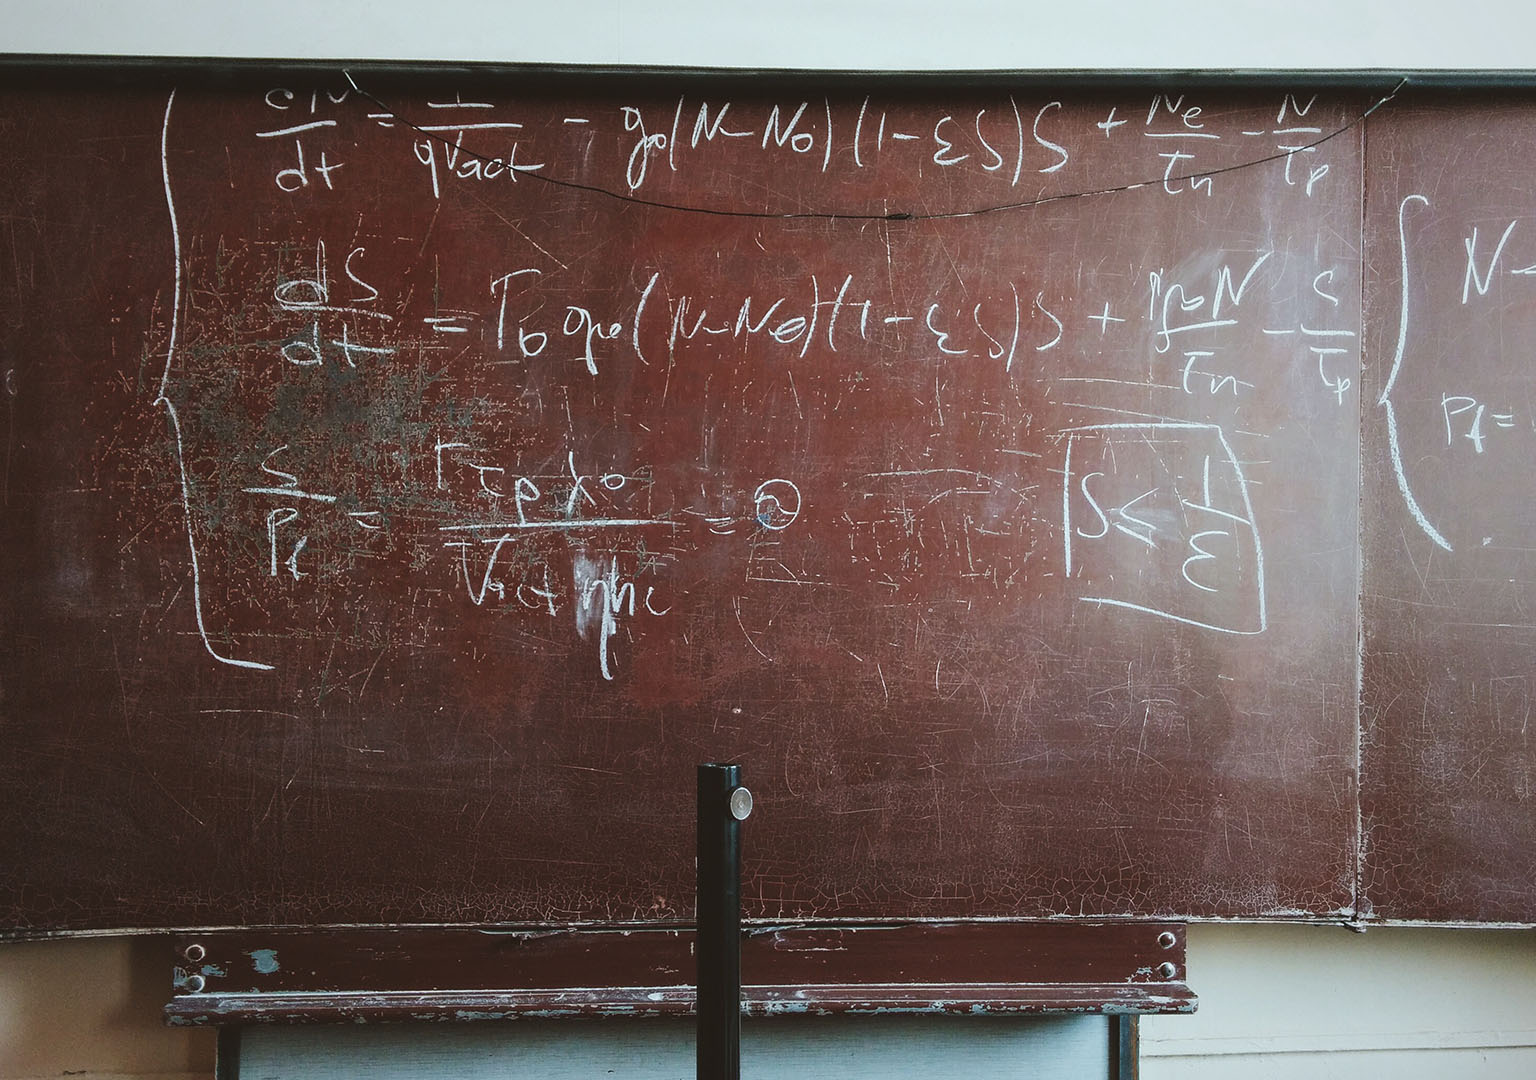 Behavioral economics and motivation research: Equations on a chalkboard